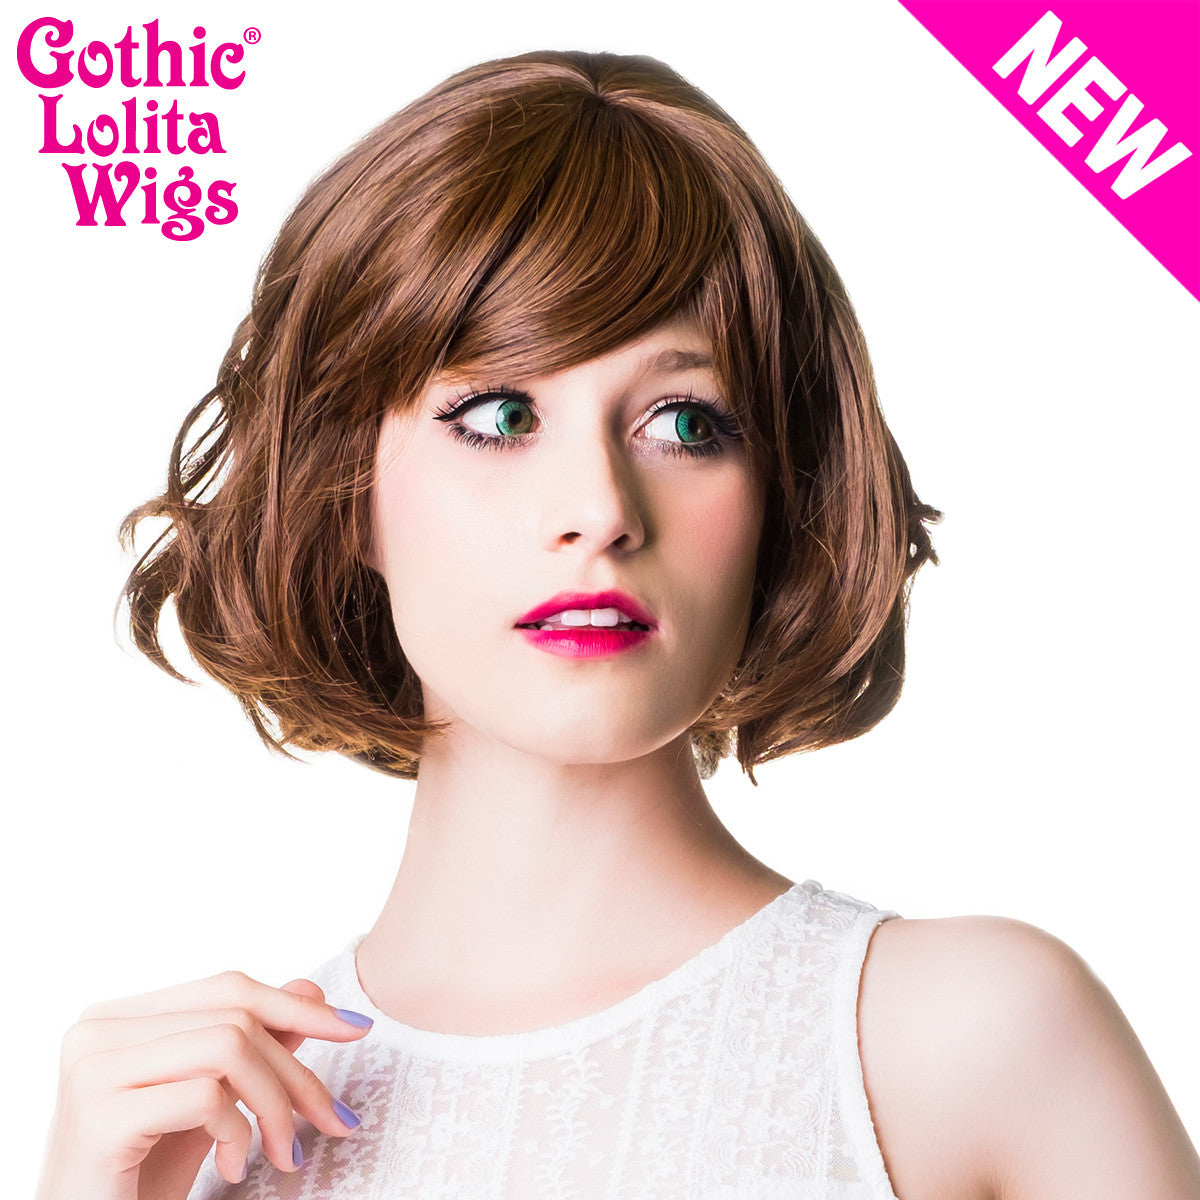 Gothic Lolita Wigs® Bon Bon Collection - Golden Chestnut Brown Mix -00491